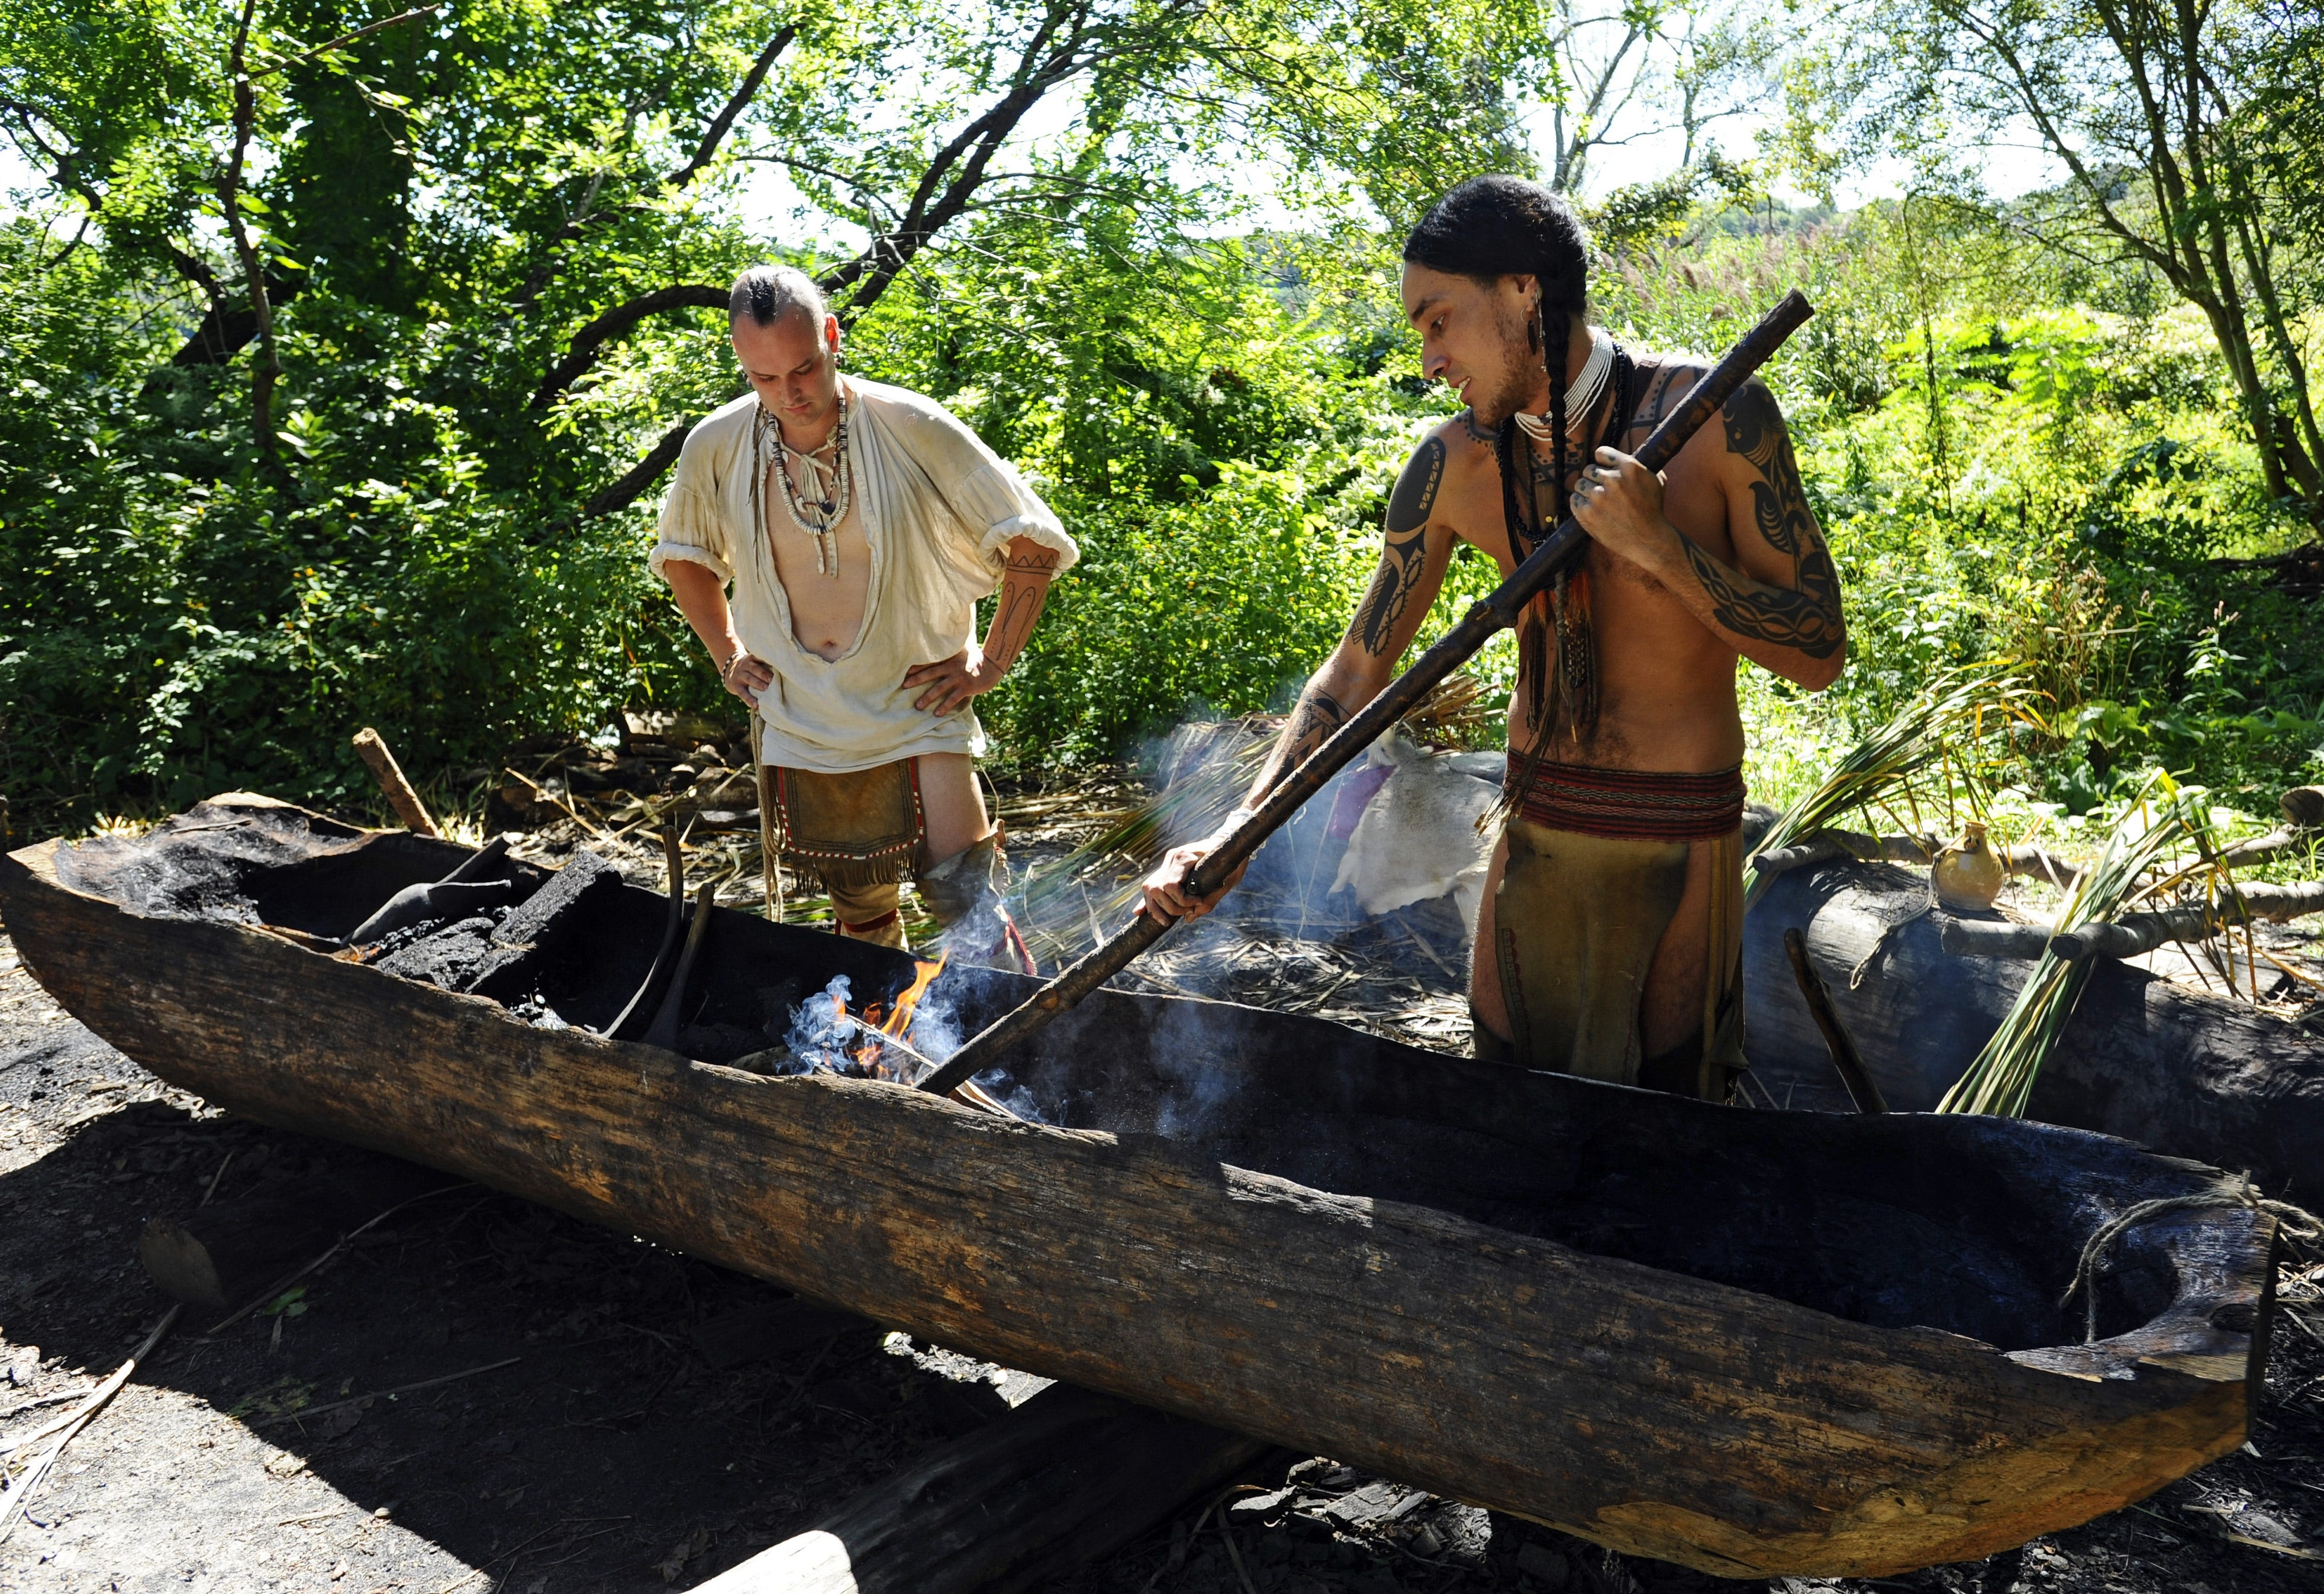 Mashpee Wampanoag and Plimoth Patuxet site supervisor Phillip Wynne, RIGHT, scrapes out a pine mishoon while Dan Shears observes. Plimoth Patuxet is a living museum that has a replica 17-century Pilgrim village and Wampanoag settlement.